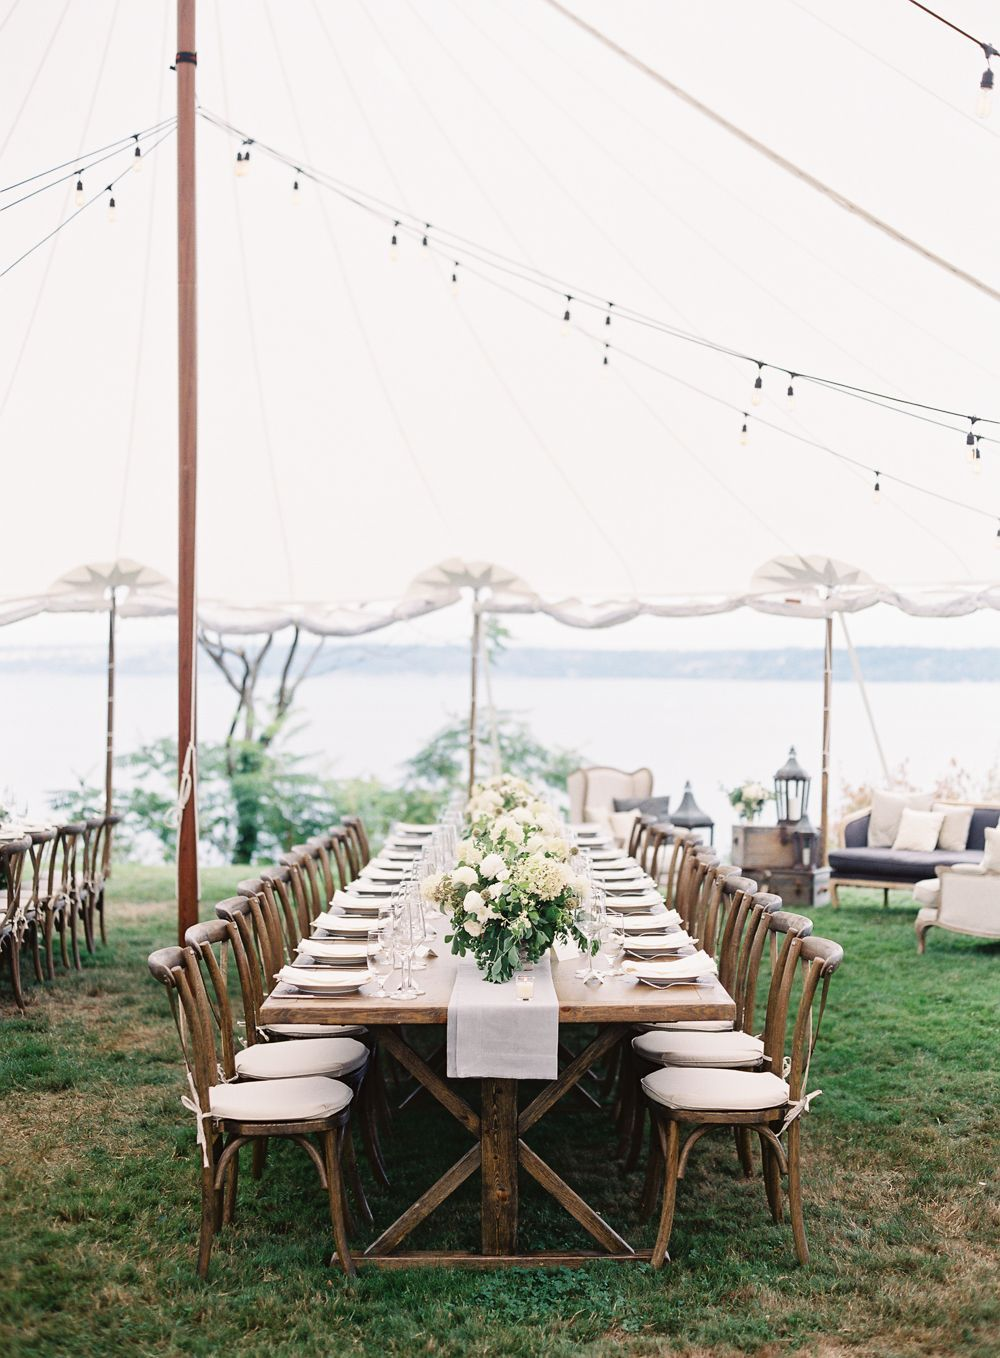 13-outdoor-wedding-reception-decor